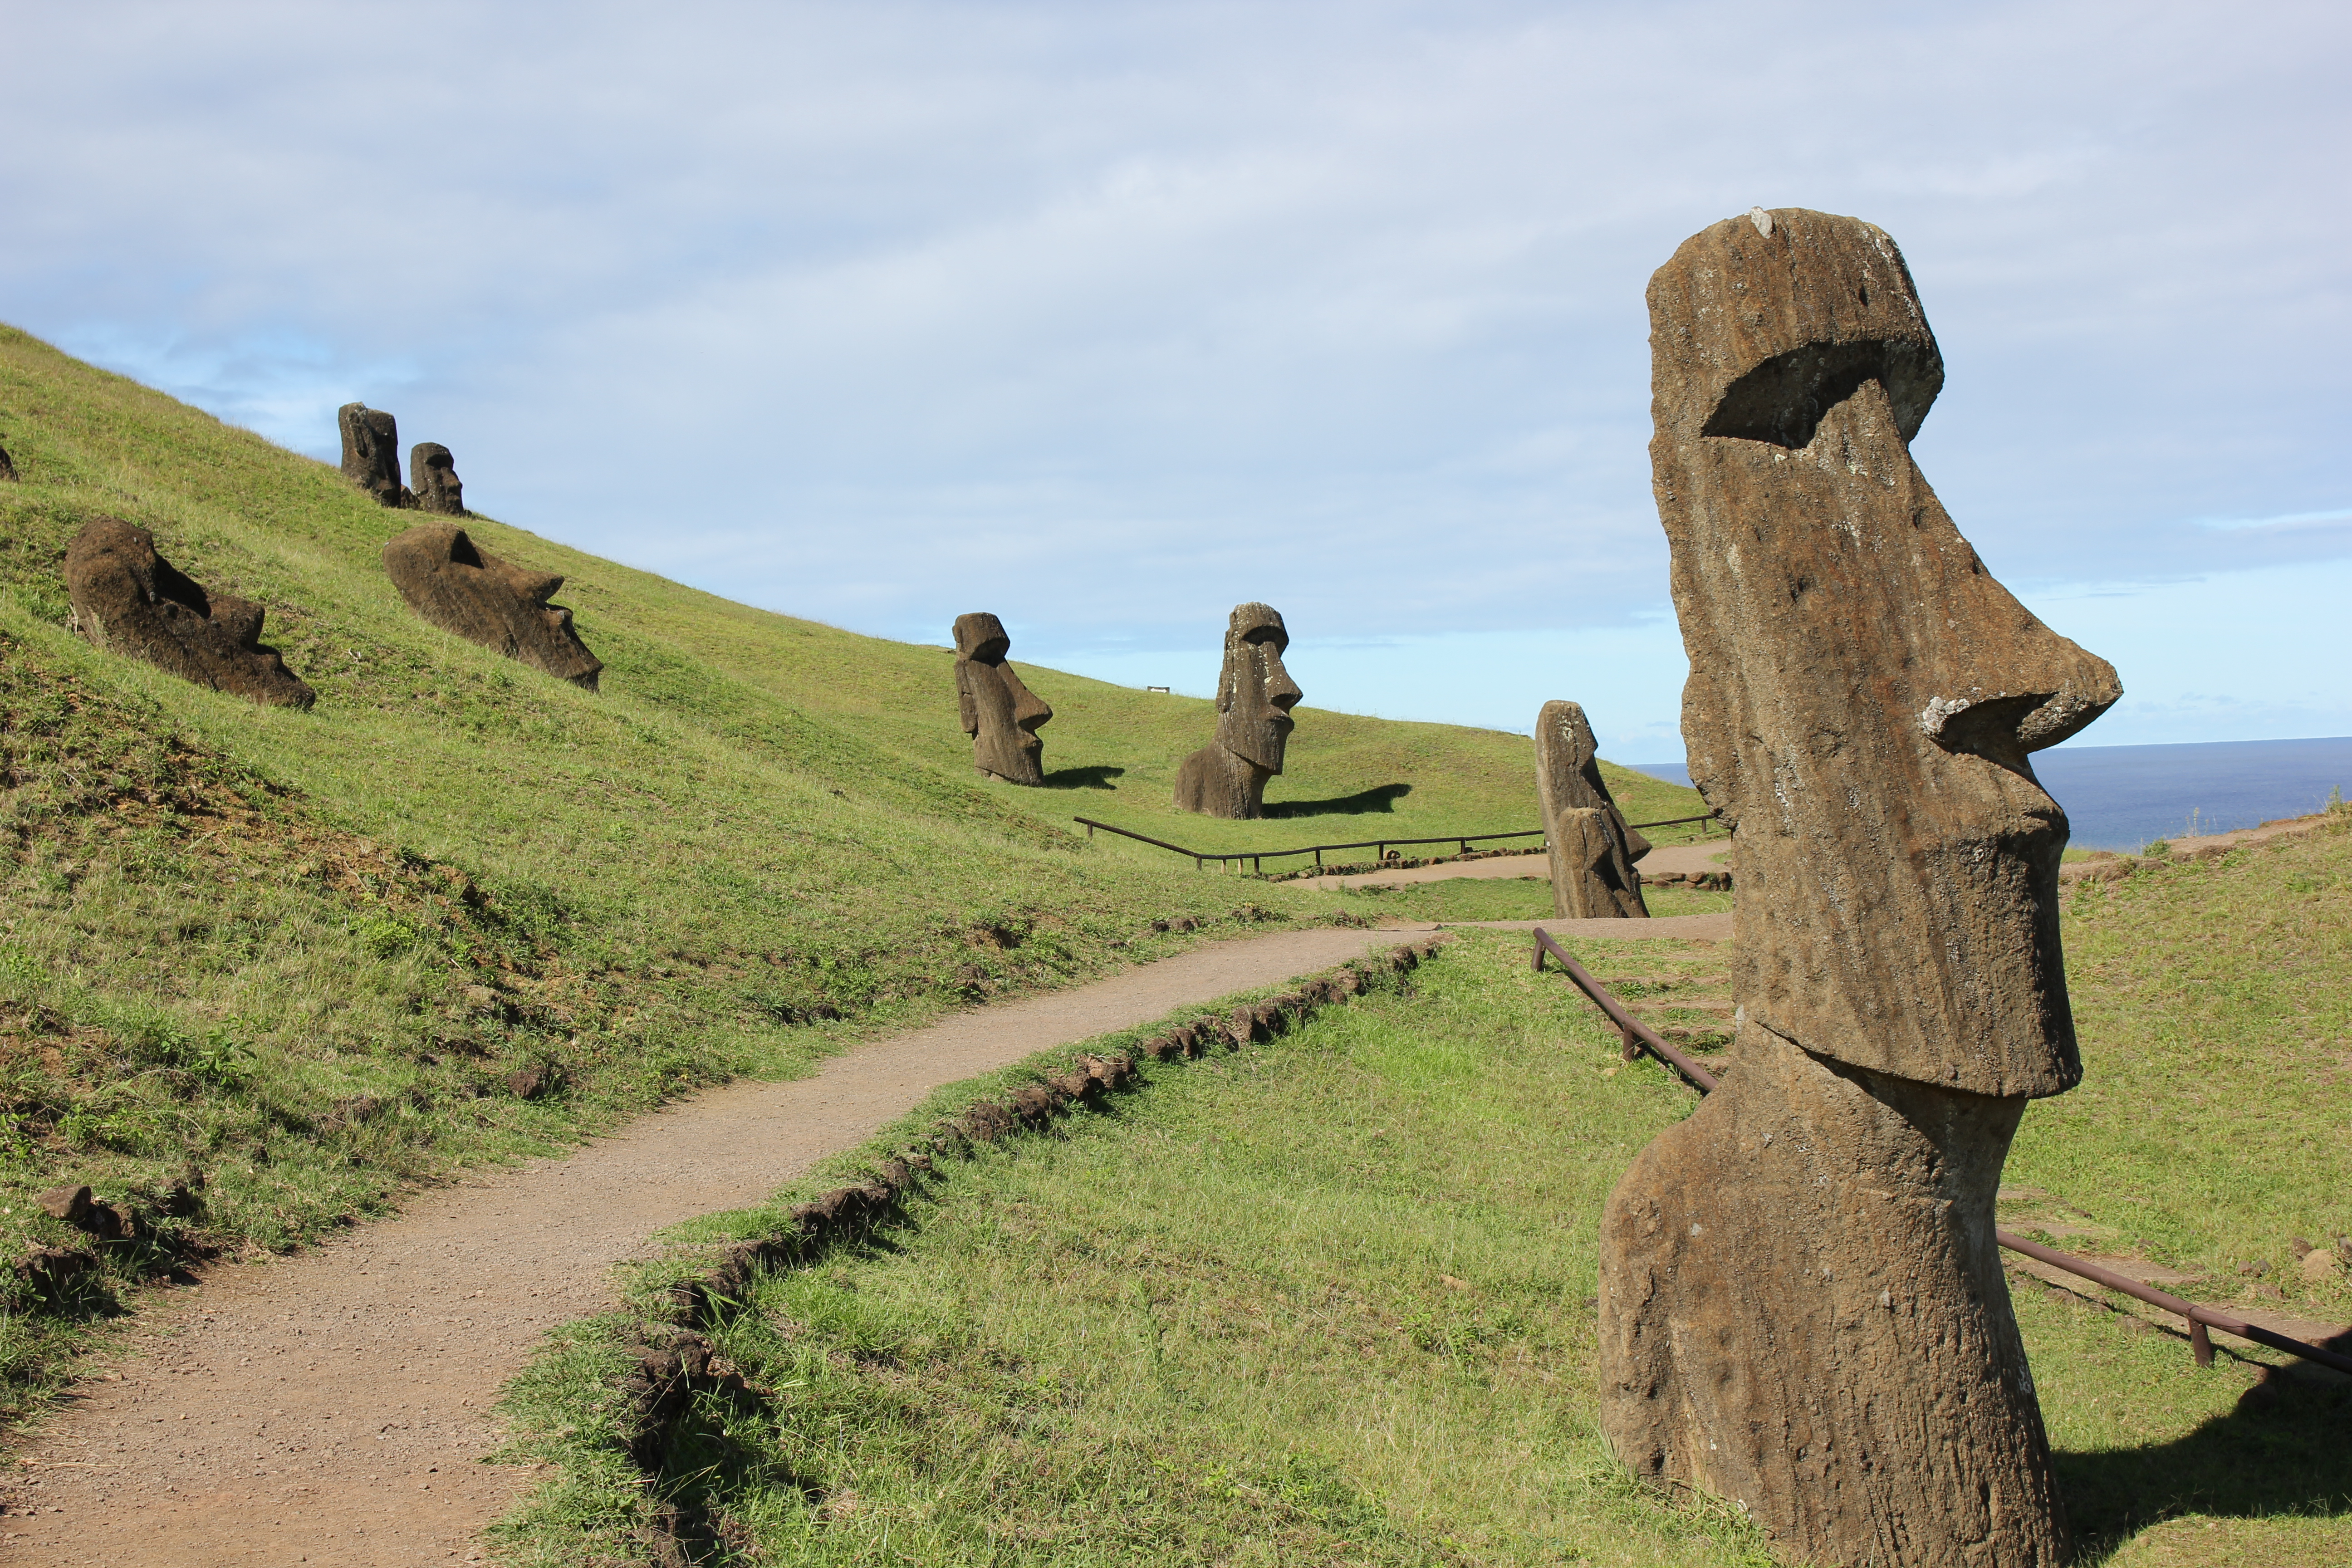 The geology of the stone tools used to make the stone statues on Easter  Island delivers